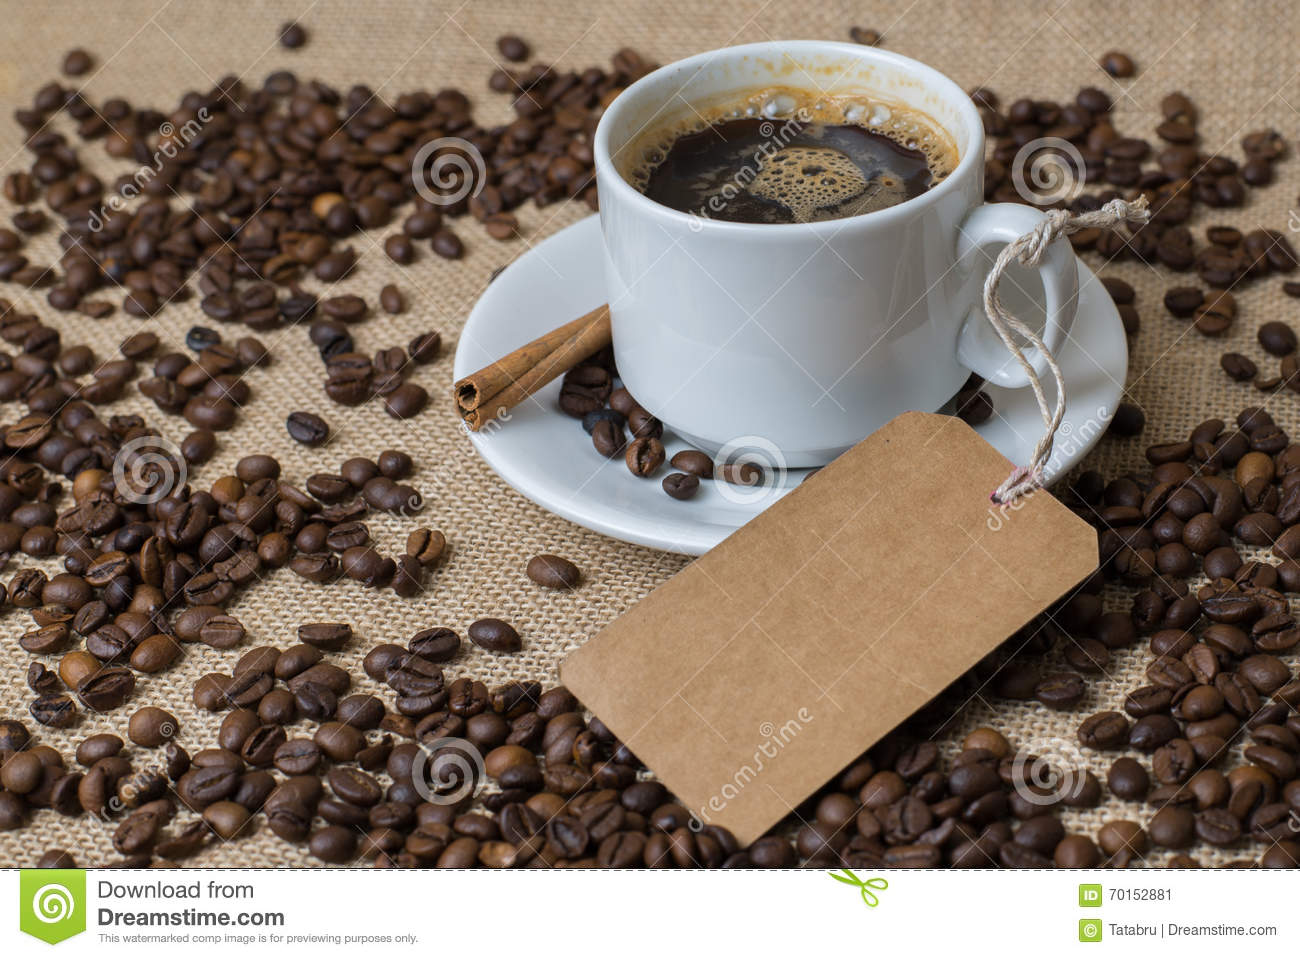 A Cup of coffee with coffee beans and label